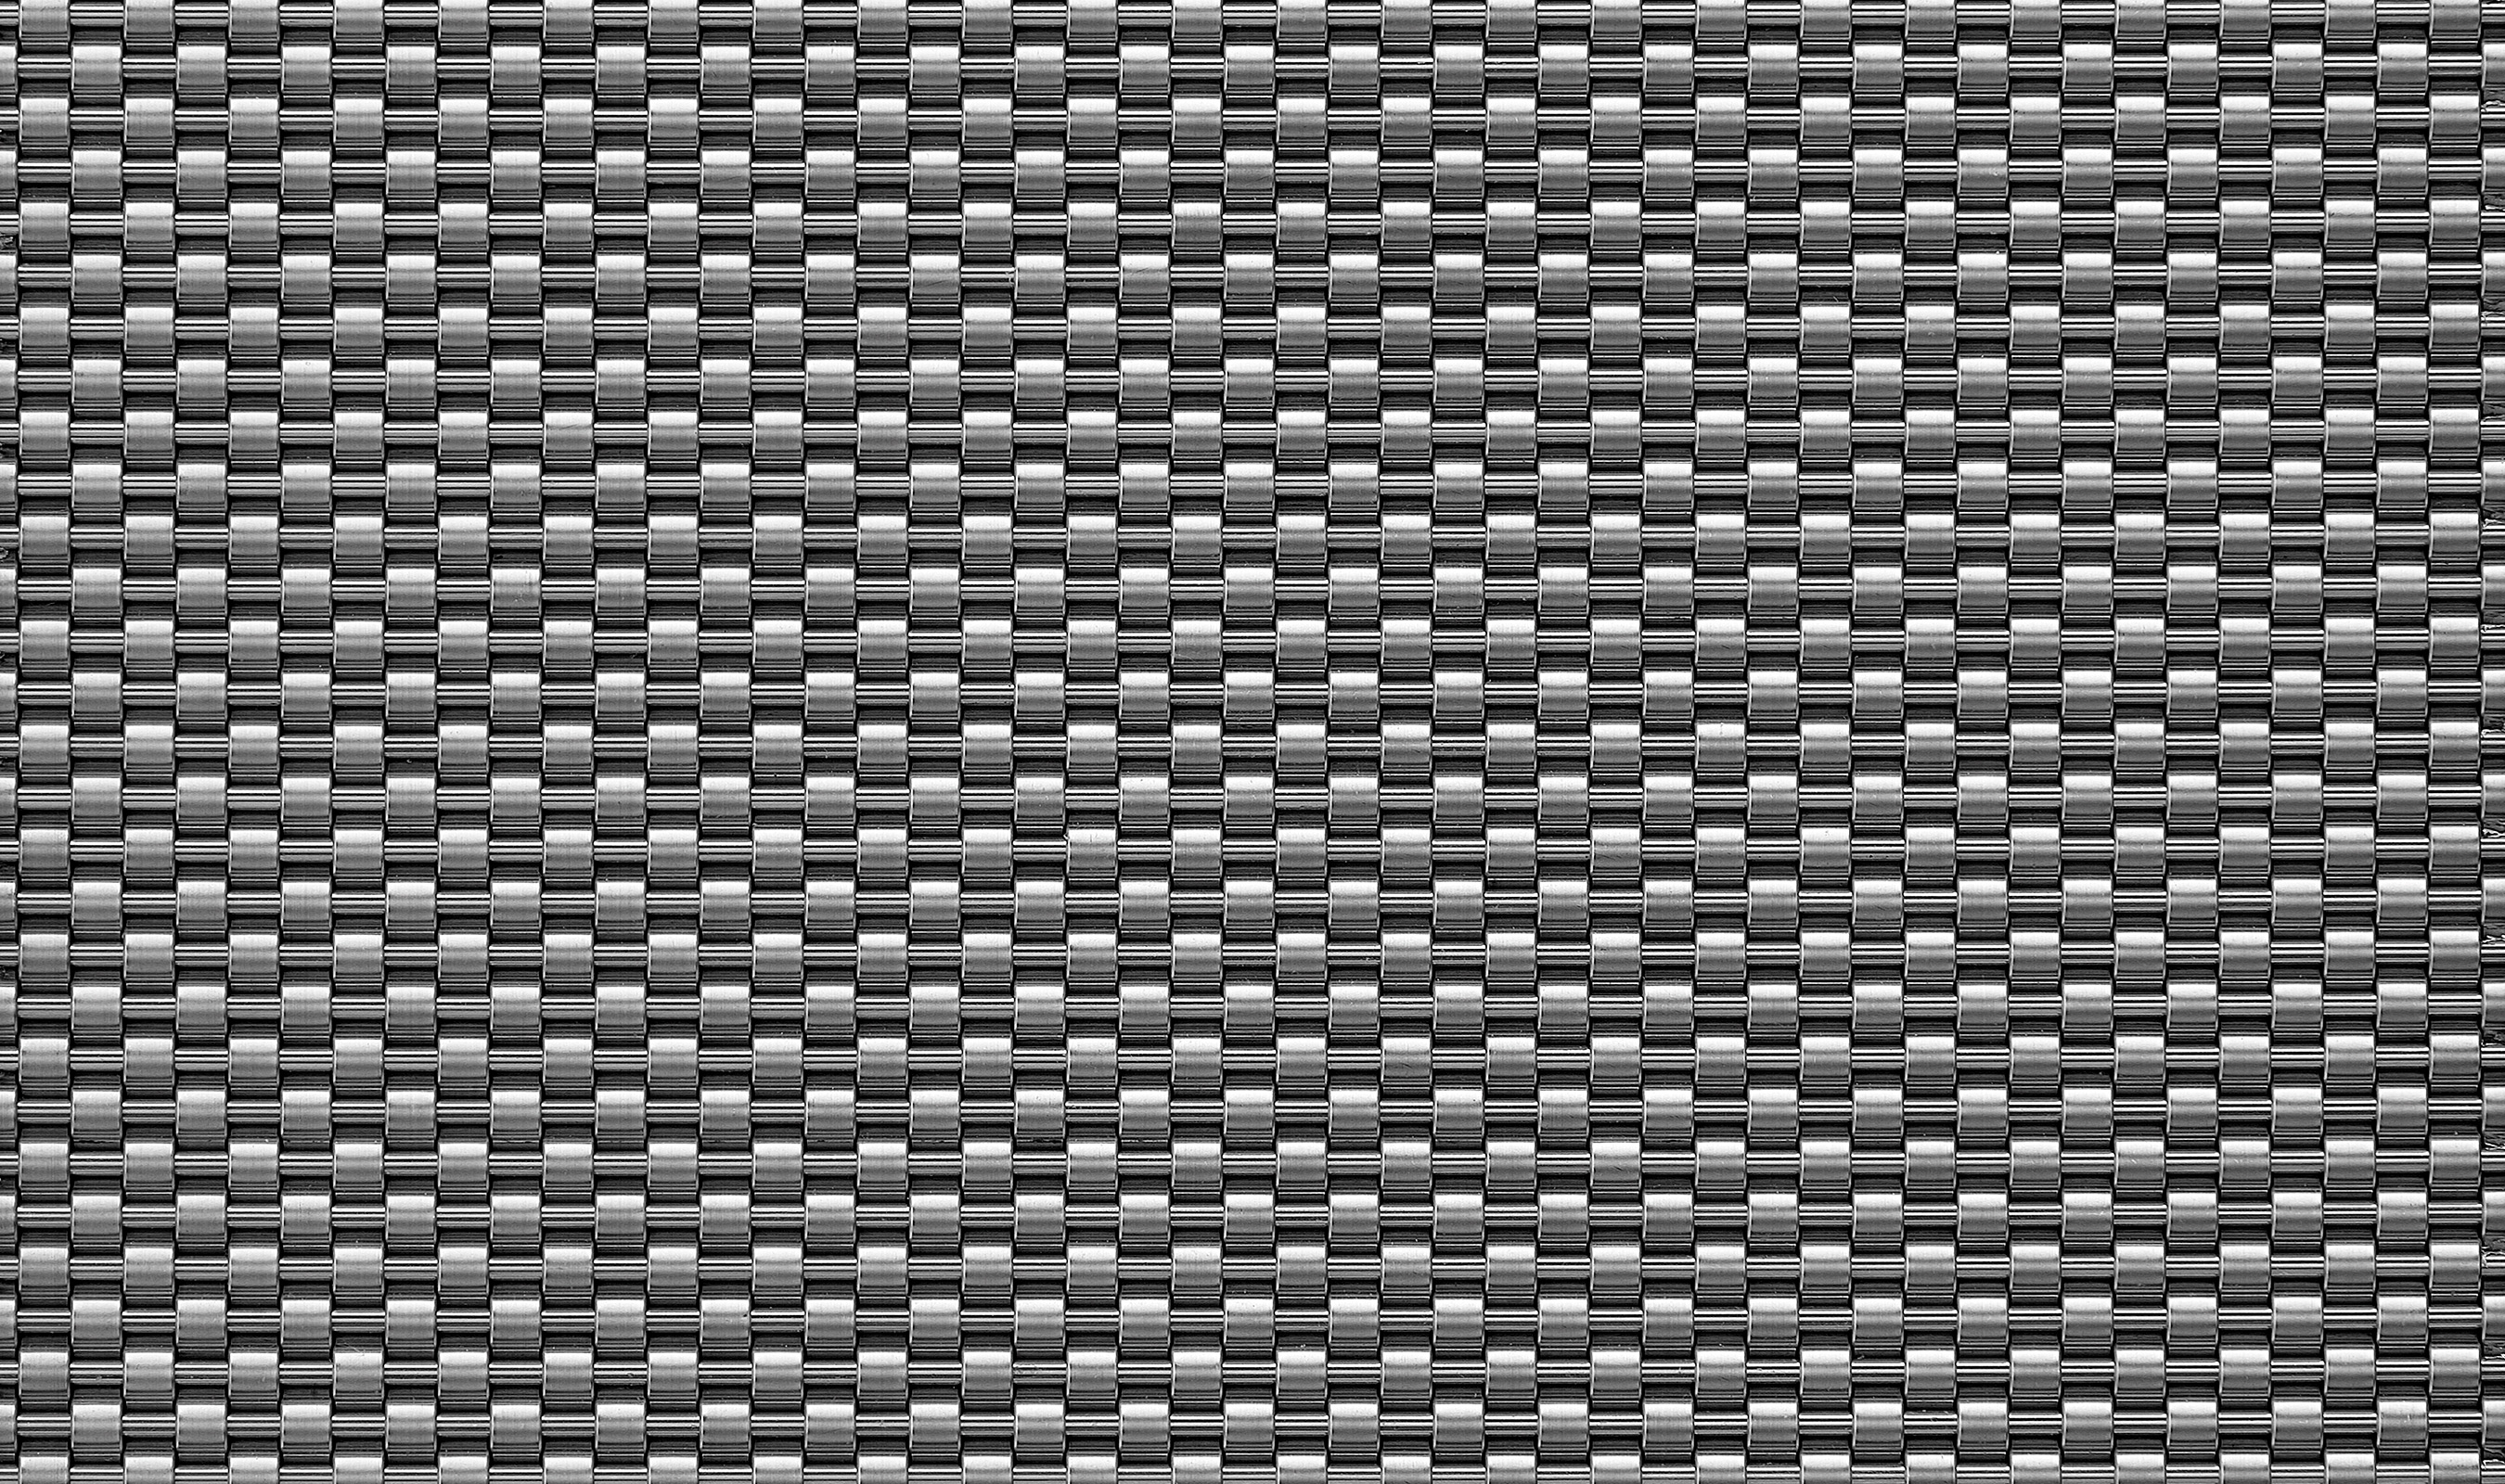 DS-41 decorative opaque woven wire mesh in stainless steel